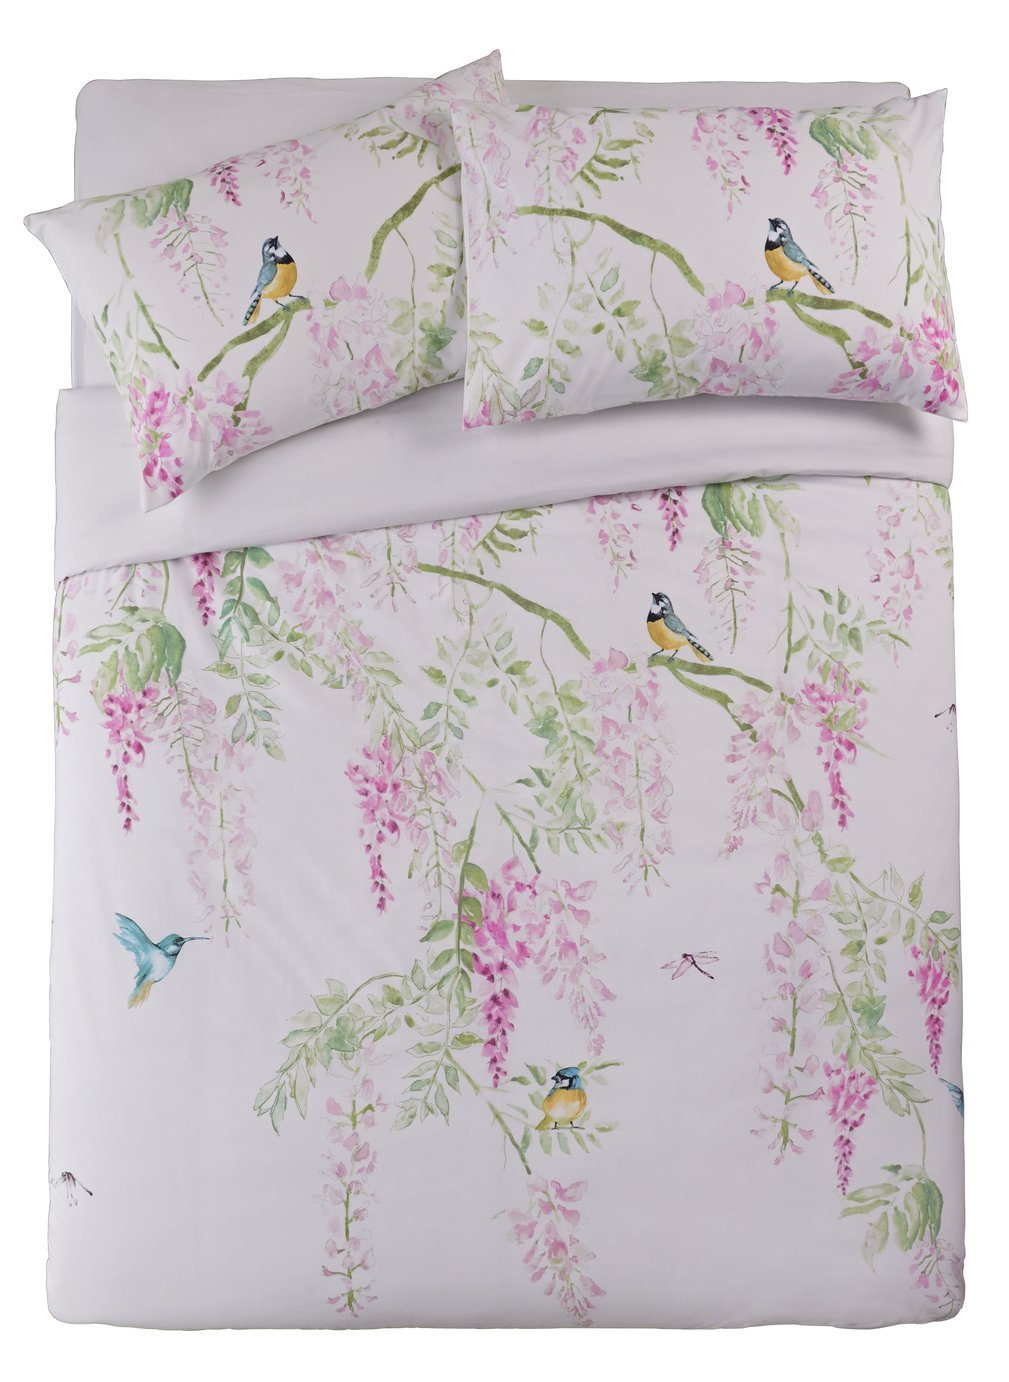 Argos Home Blue Tit Printed Bedding Set - Double